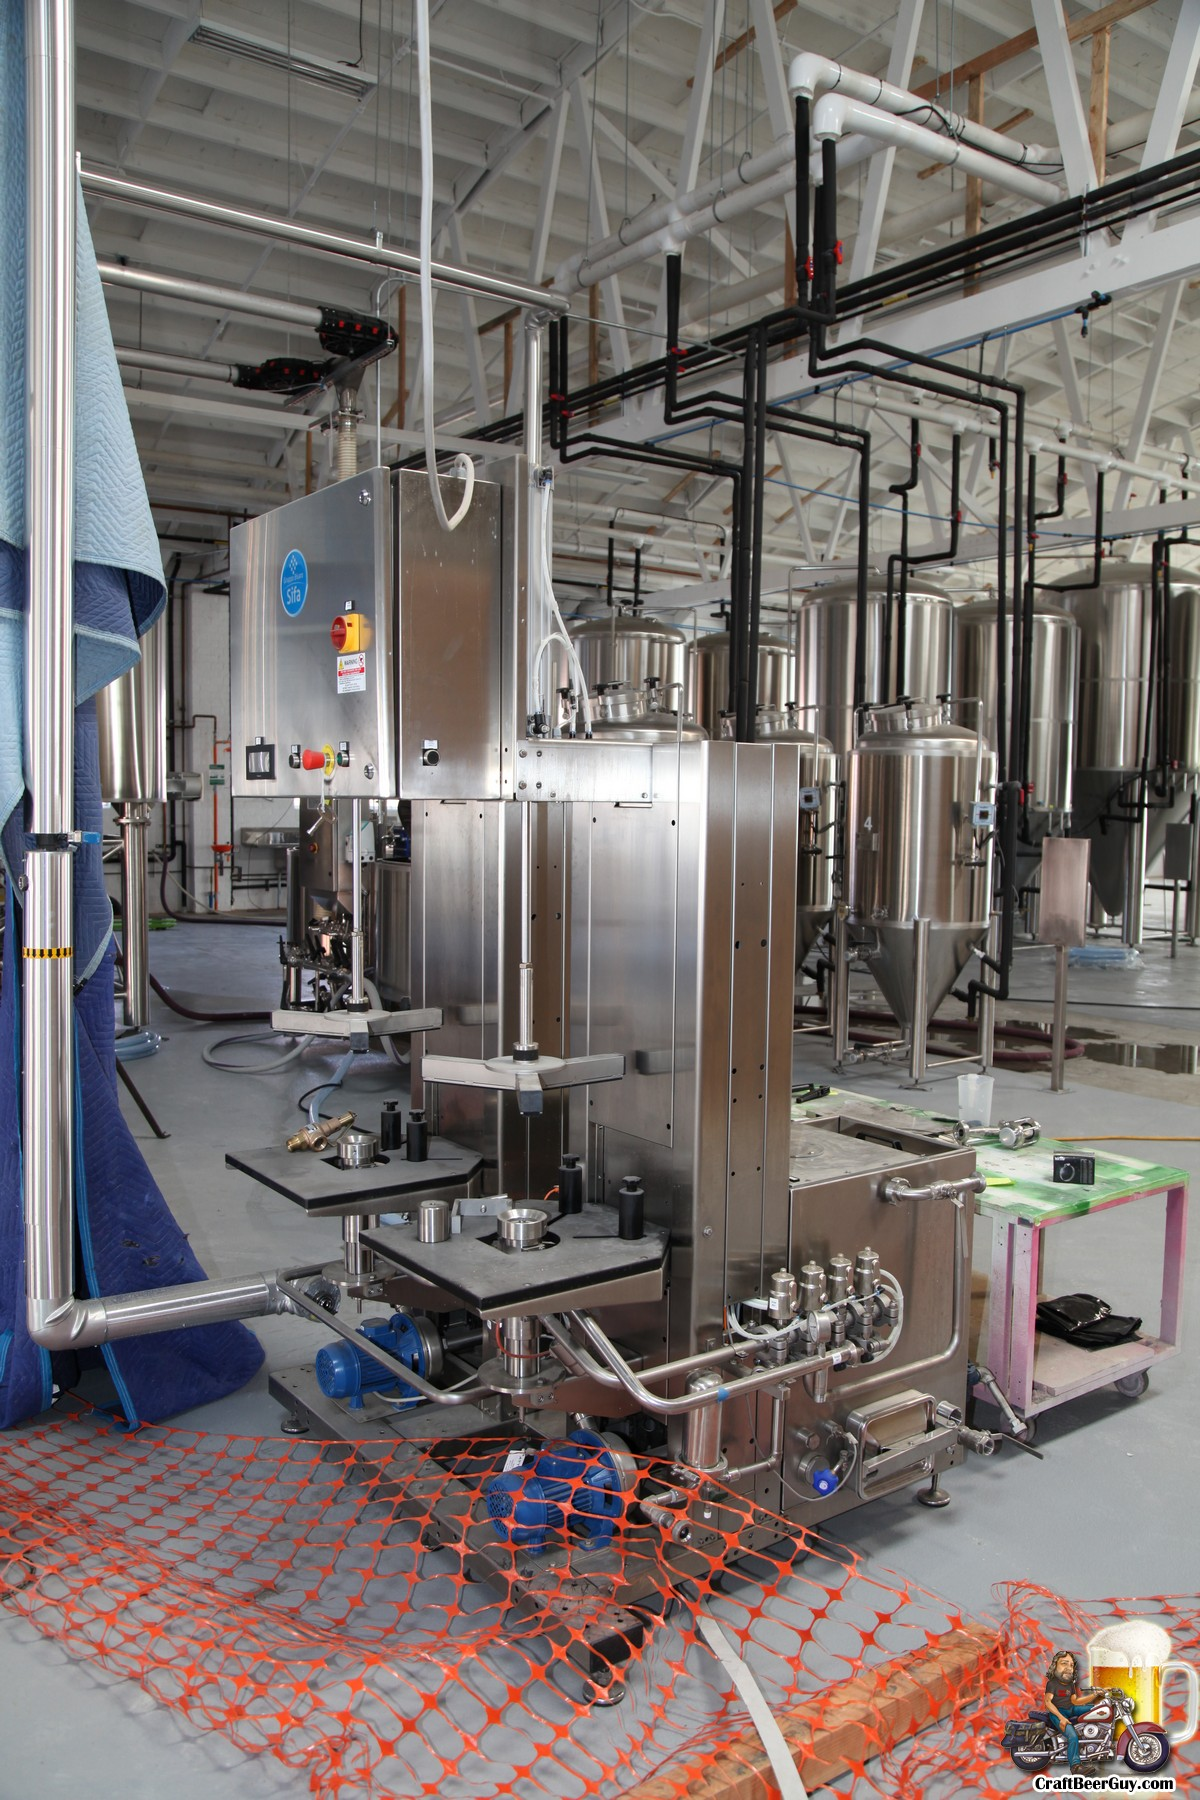 spacecraft brewery - photo #40